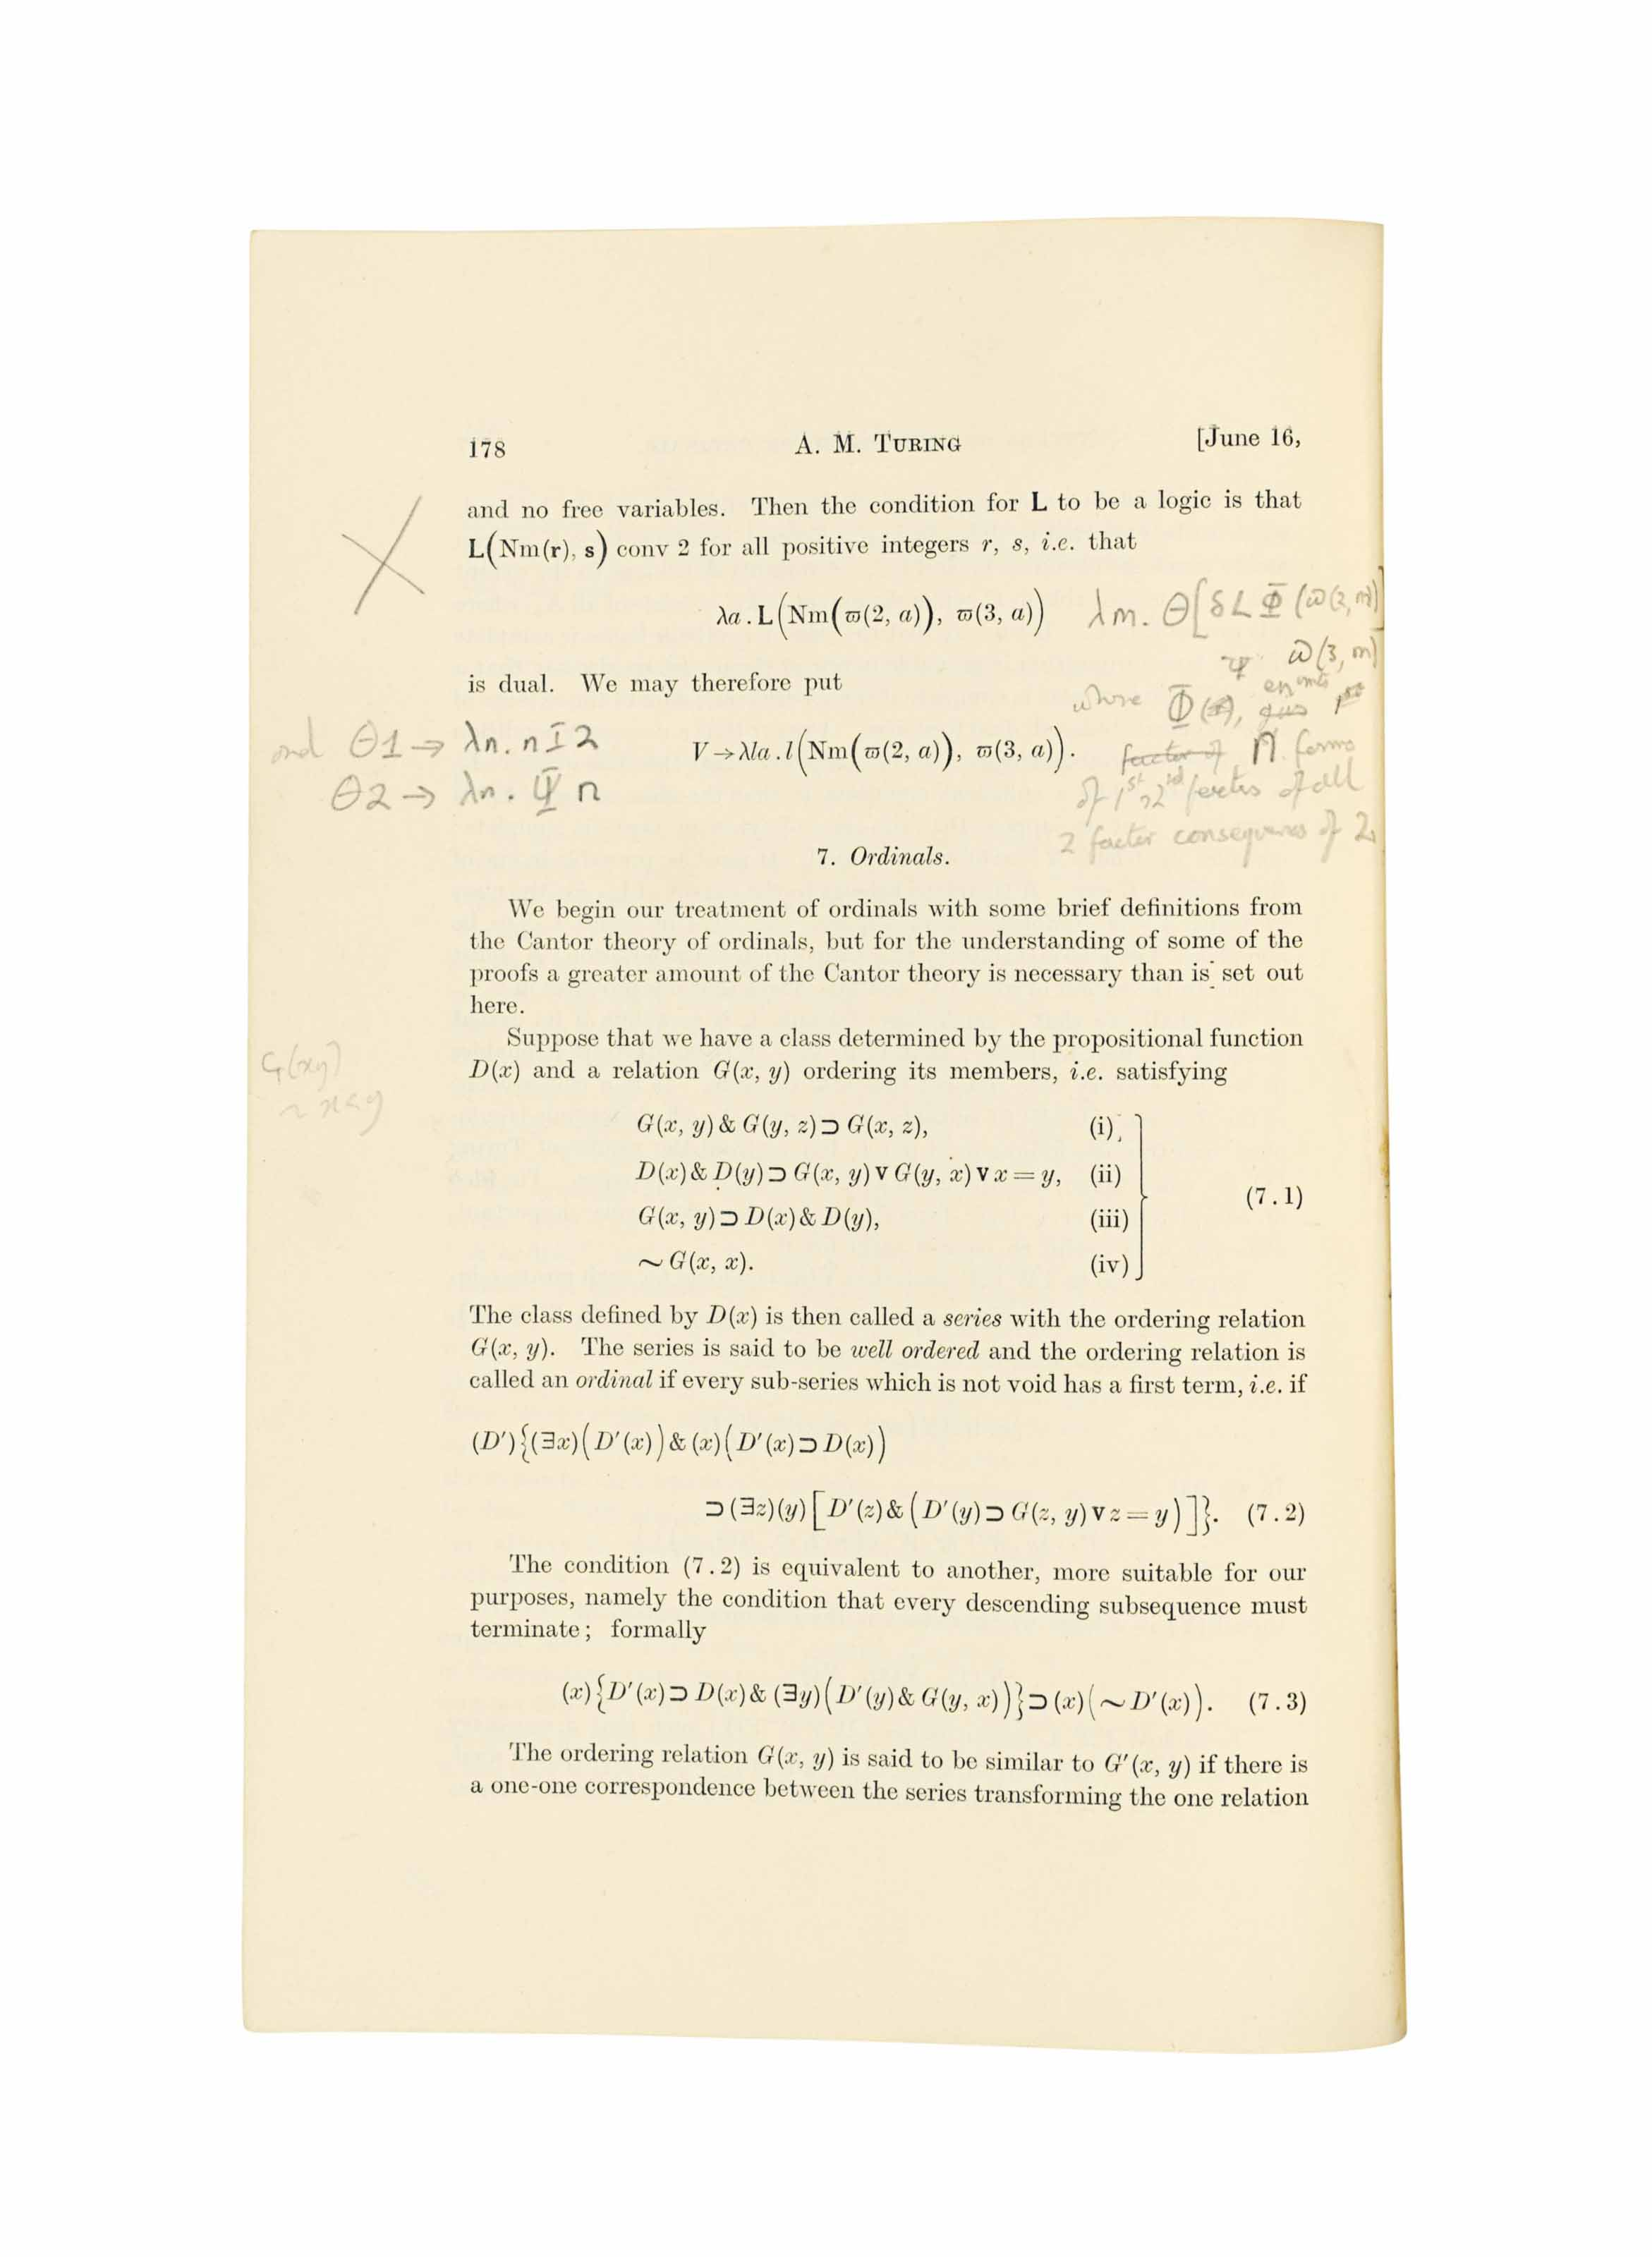 TURING, Alan  'Systems of logic based on ordinals ' Offprint